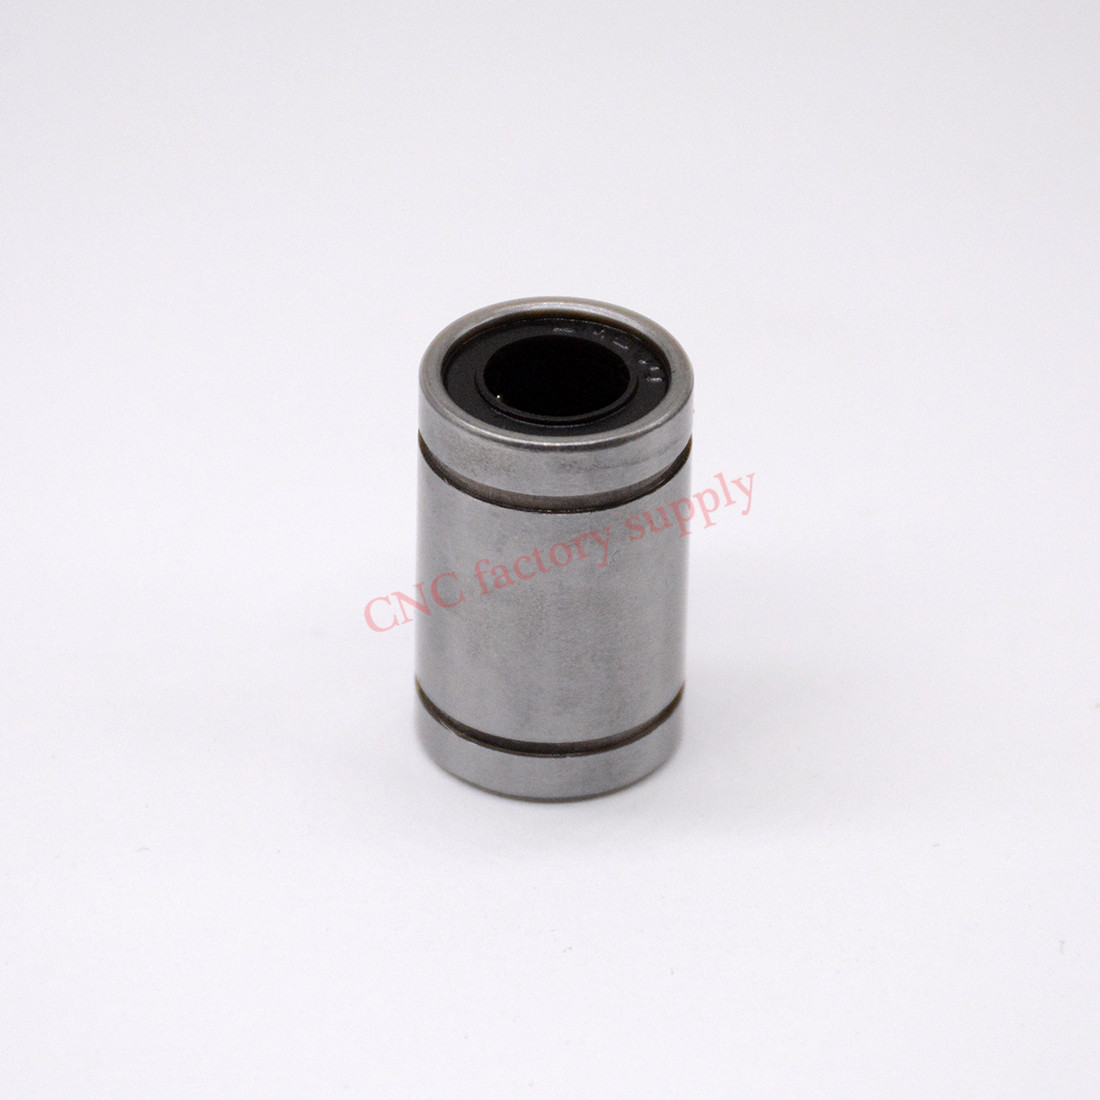 Free shipping LM50UU Linear Bushing 50mm CNC Linear Bearings free shipping lm60uu 60mm linear bushing cnc linear bearings